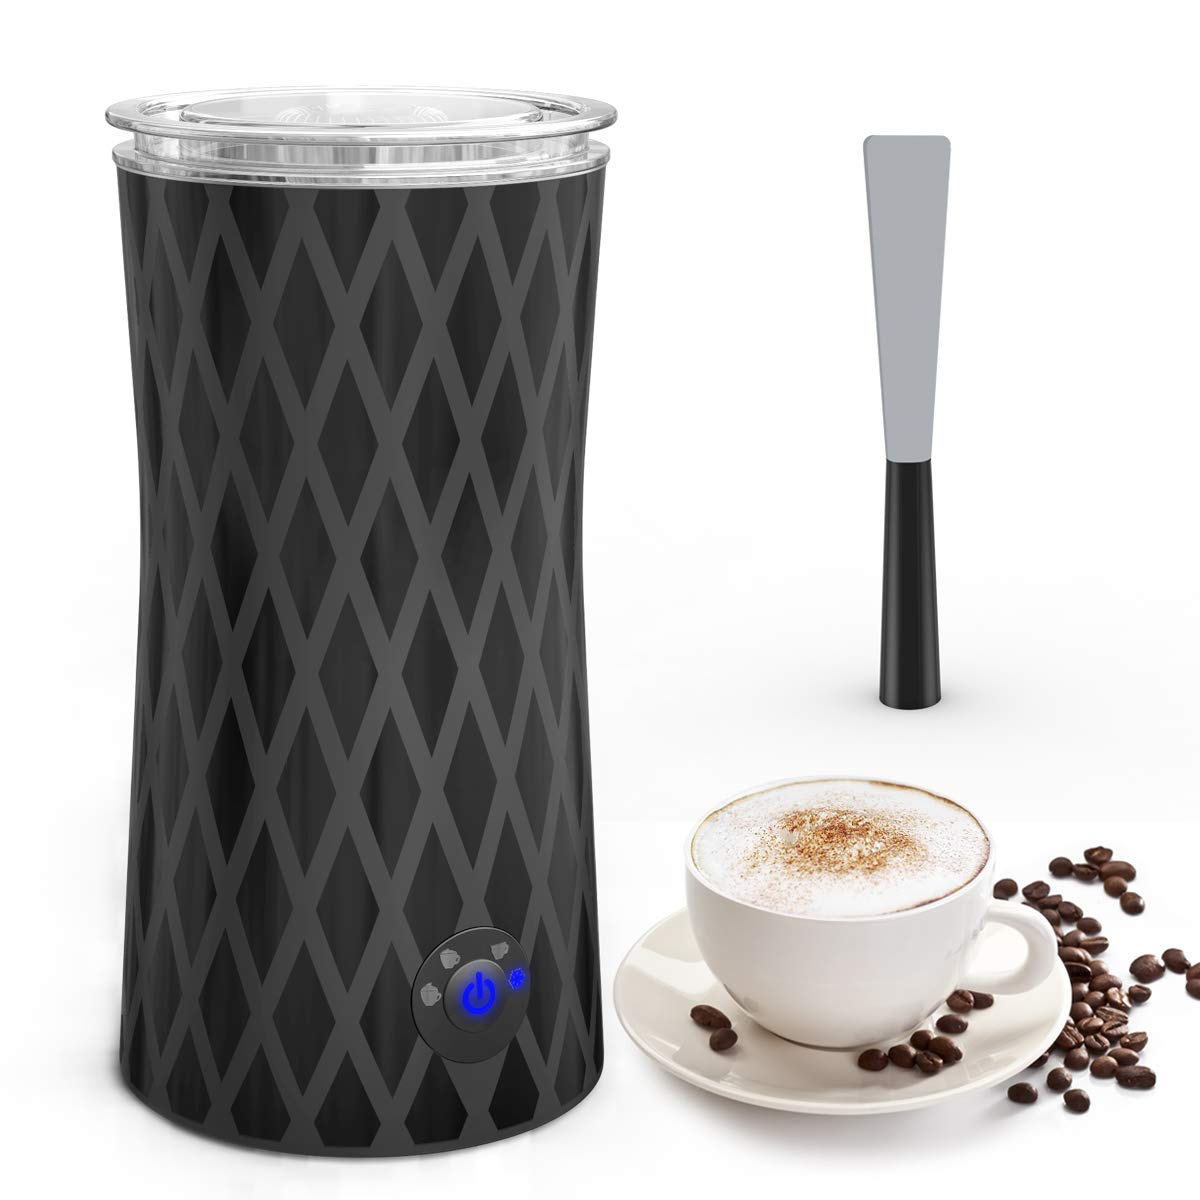 Electric Milk Frother, Keenstone Automatic Milk Steamer Coffee Frother Hot or Cold Milk Froth with Silent Operation for Latte, Cappuccino, Hot Chocolate (Frothing 115ML/Heating 250ML)